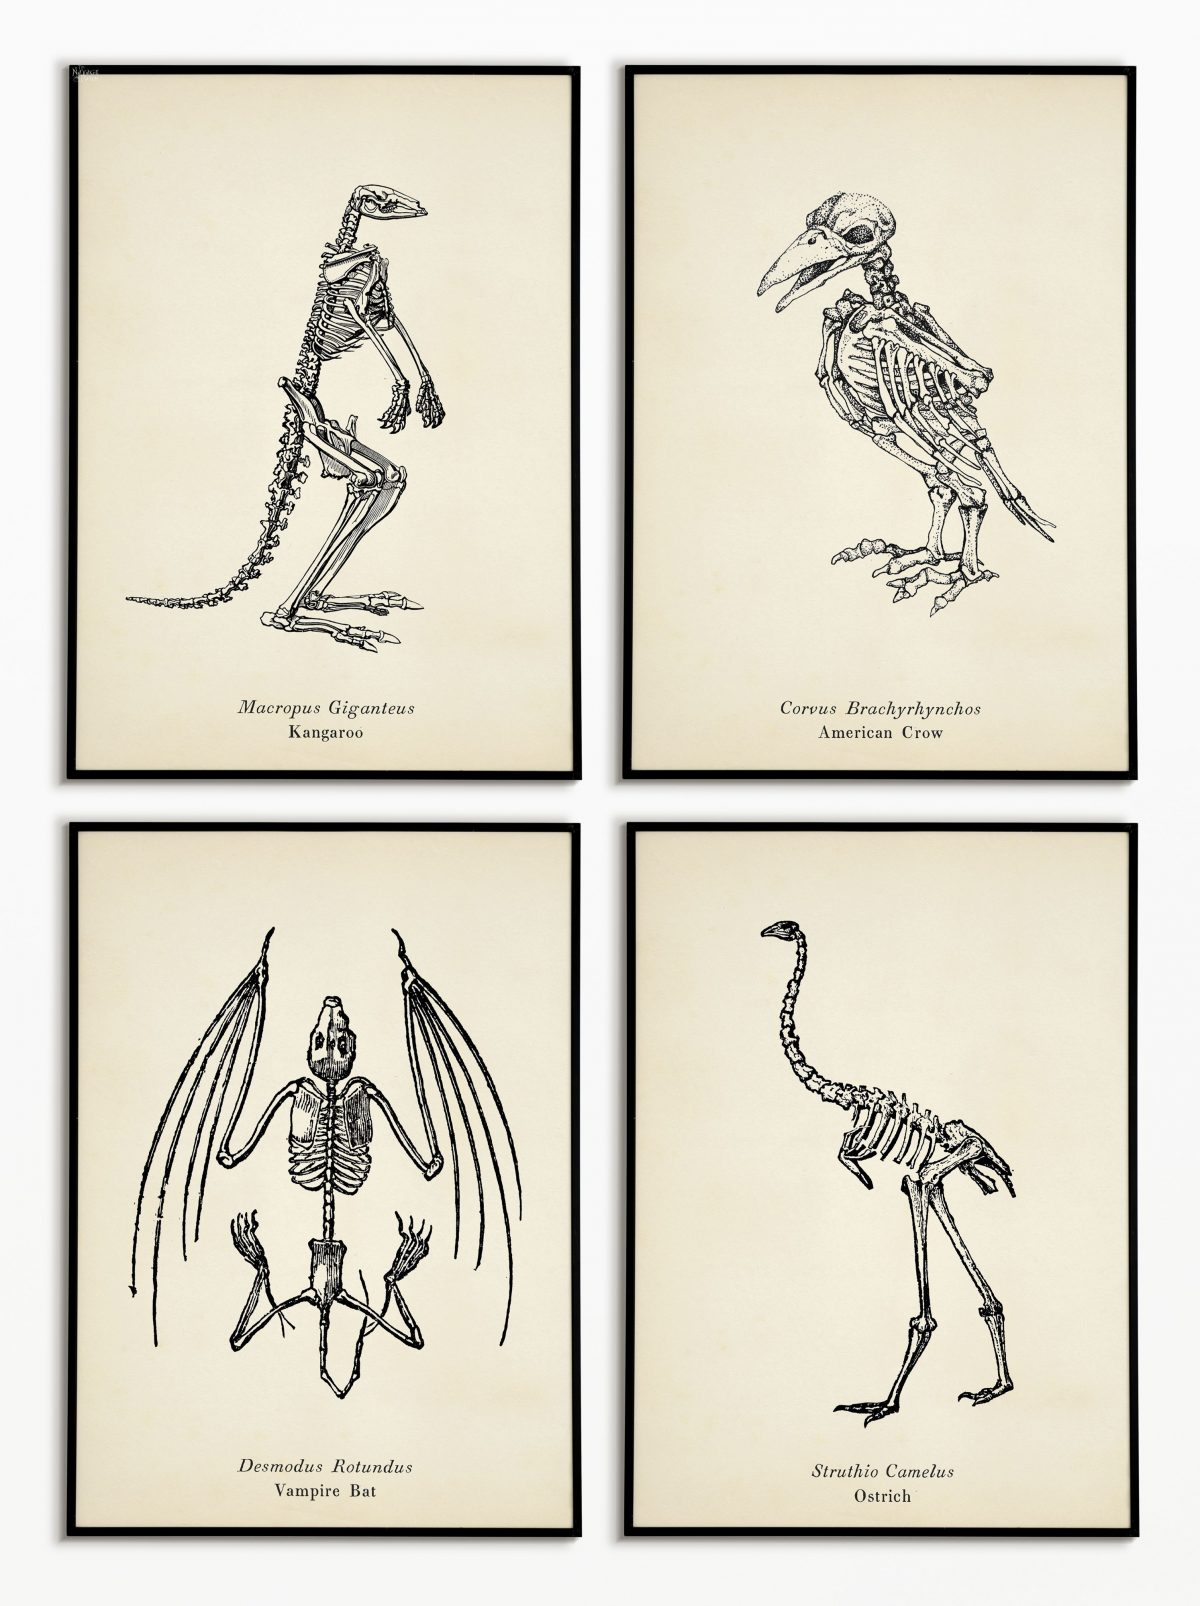 image about Free Printable Skeleton called 10+ Cost-free Animal Skeleton Printables (Common Layout) - The